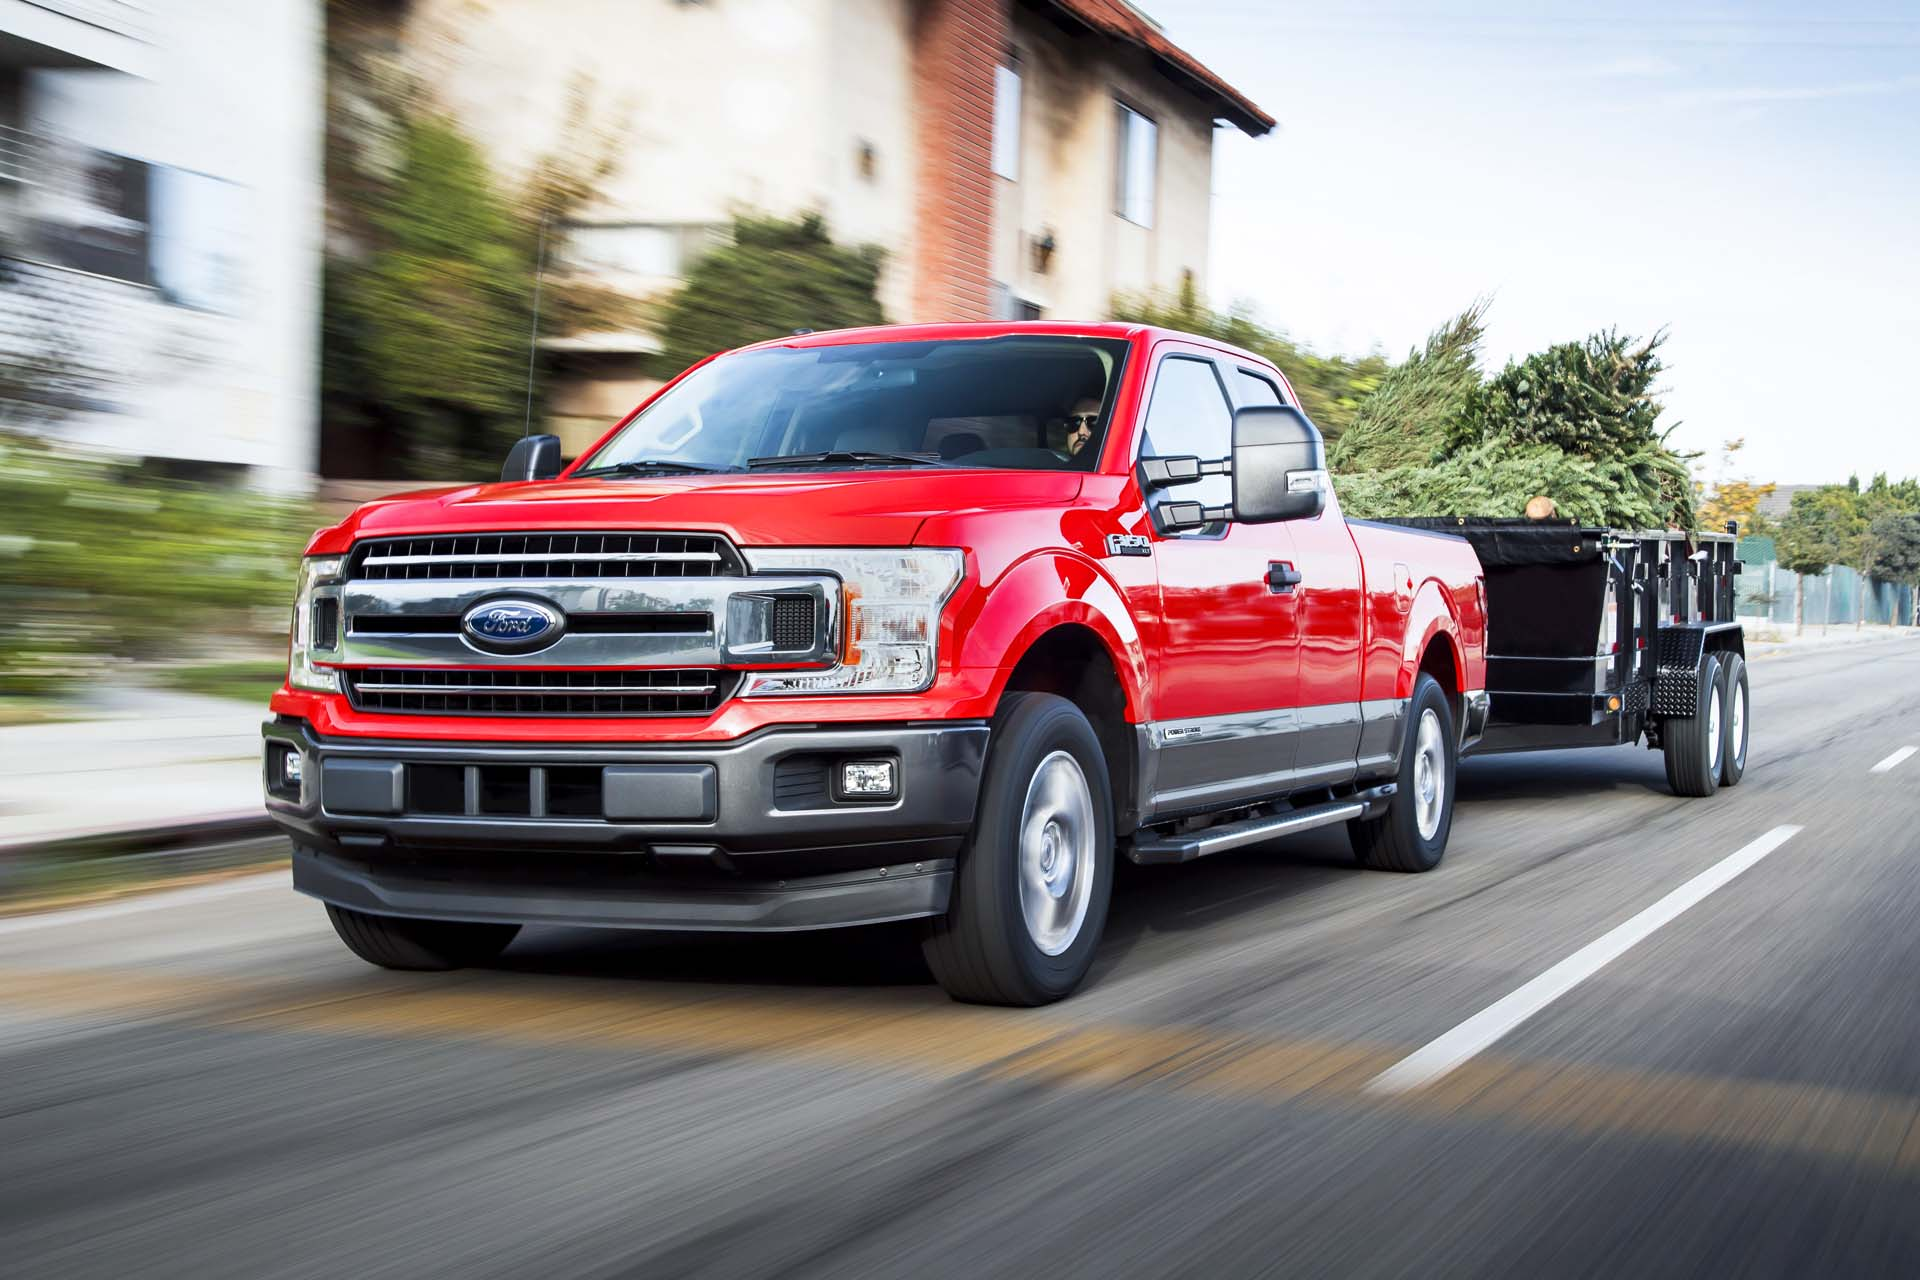 Sel Ford F 150 Specs Revealed 250 Hp Tows Up To 11 400 Pounds On In Spring